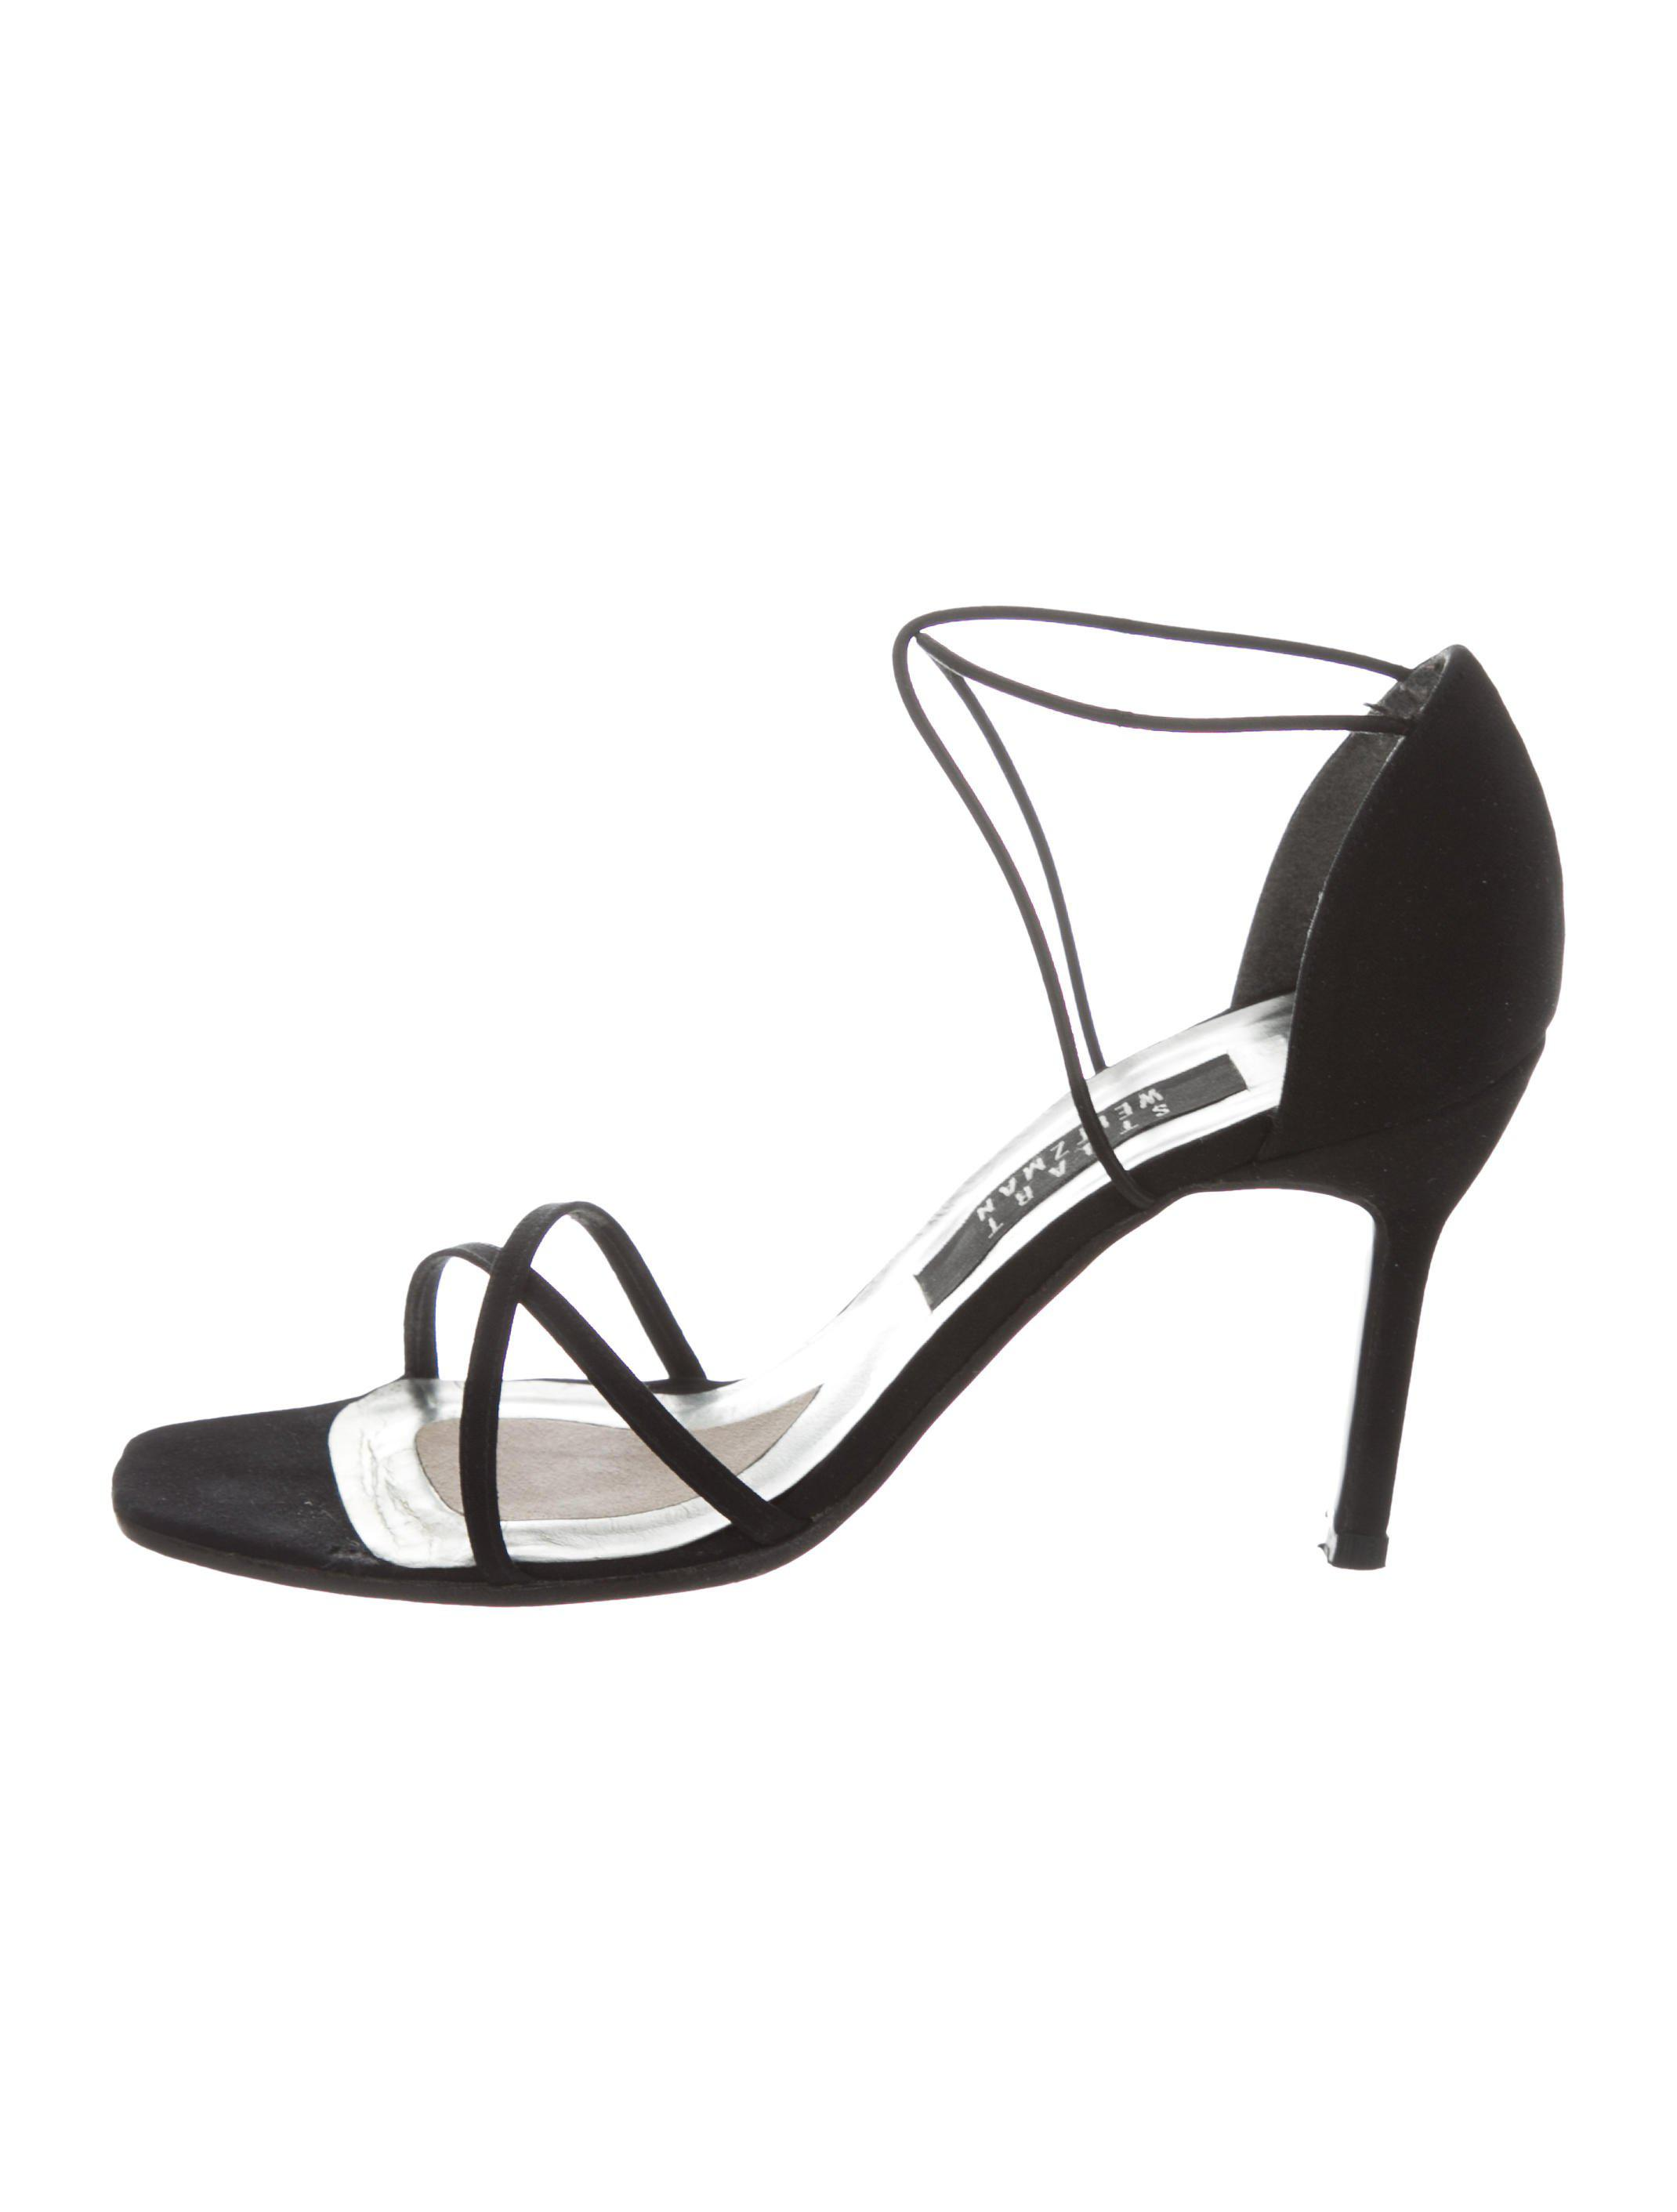 free shipping marketable Stuart Weitzman Square-Toe Multistrap Sandals free shipping limited edition new styles online LsT7dK9OfB